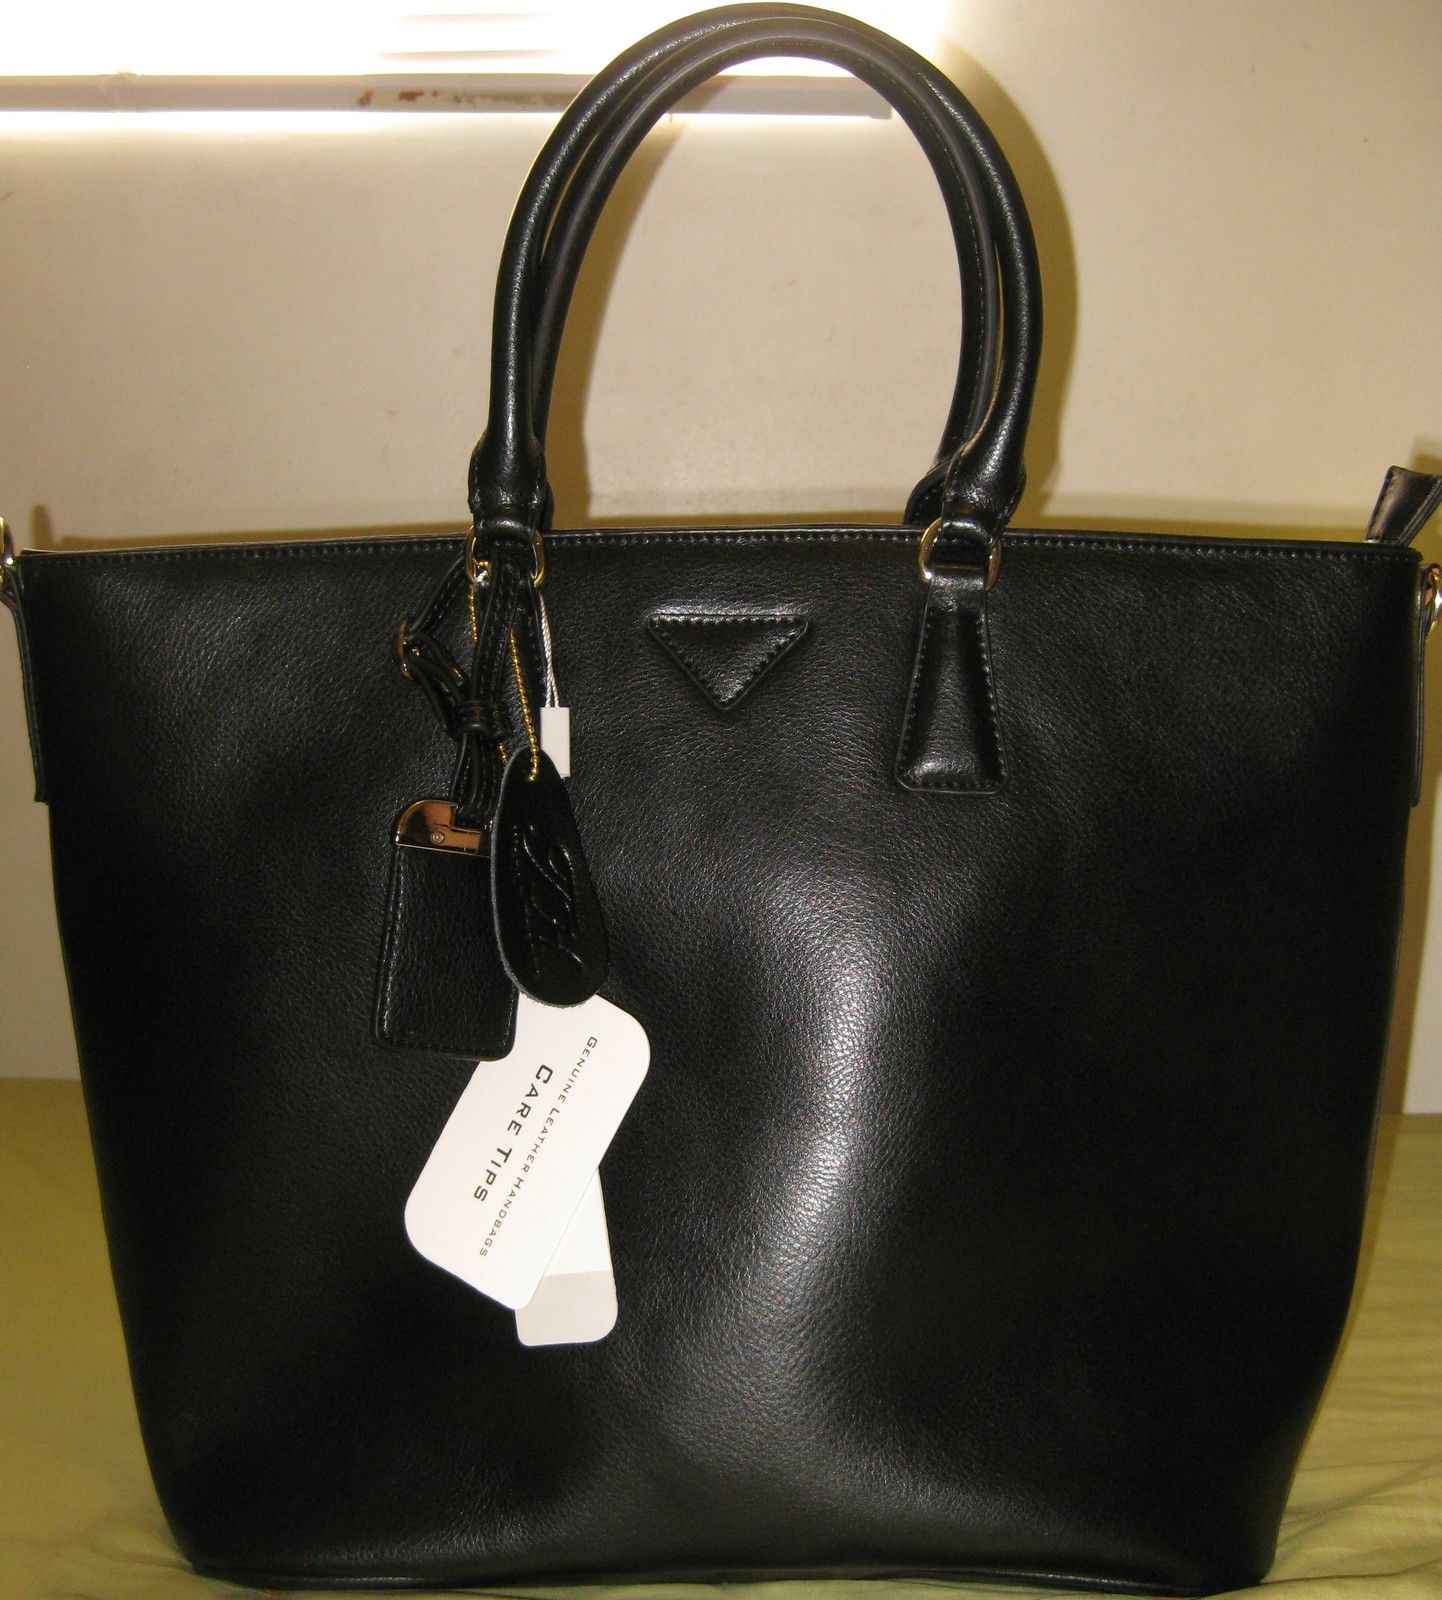 ITALIAN GENUINE NAPPA LEATHER HANDBAGS BLACK COLOR